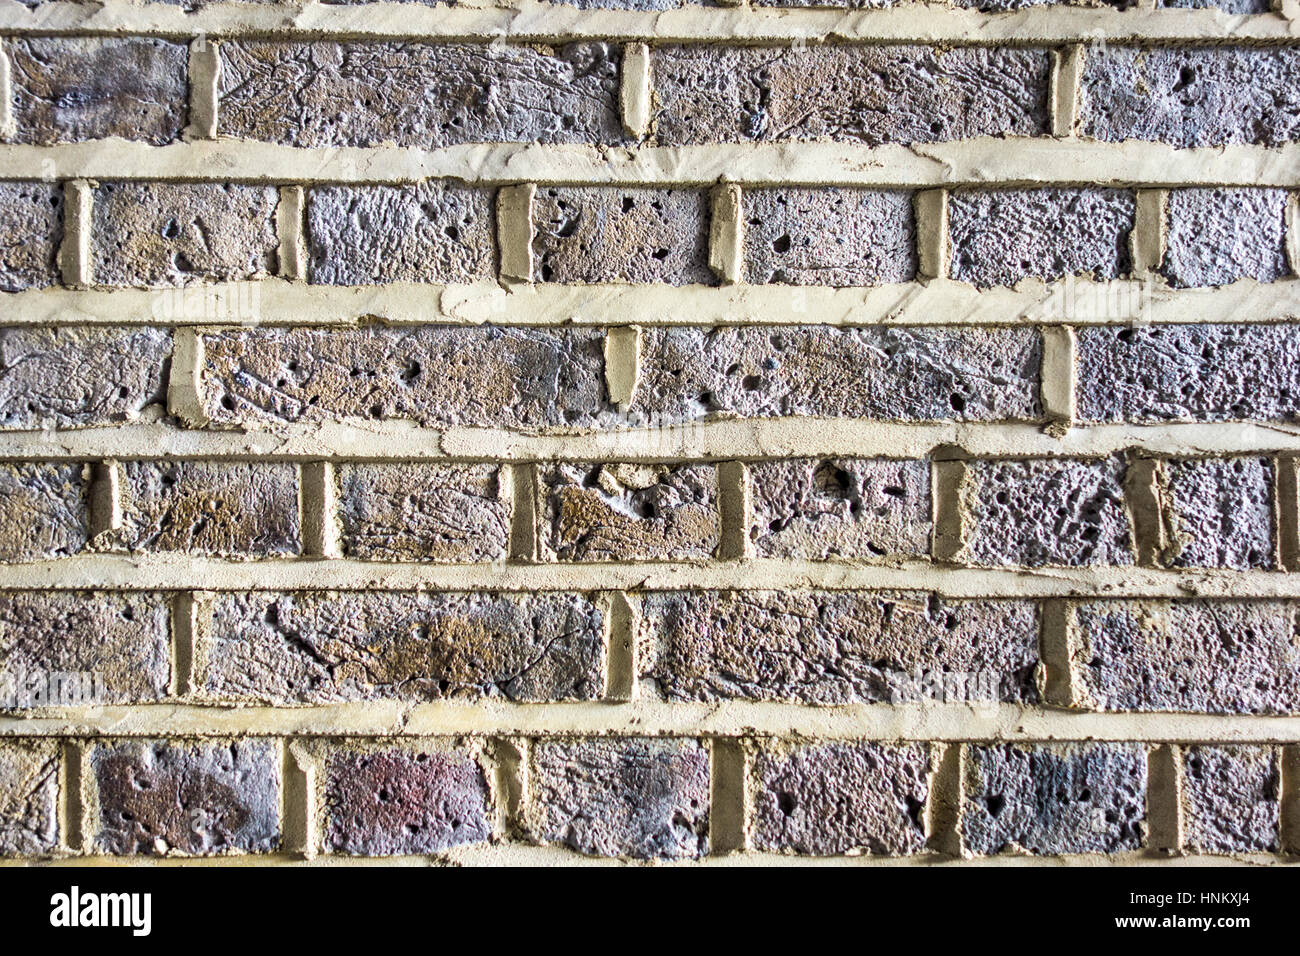 Brick wall with new proud pointing. London, UK - Stock Image